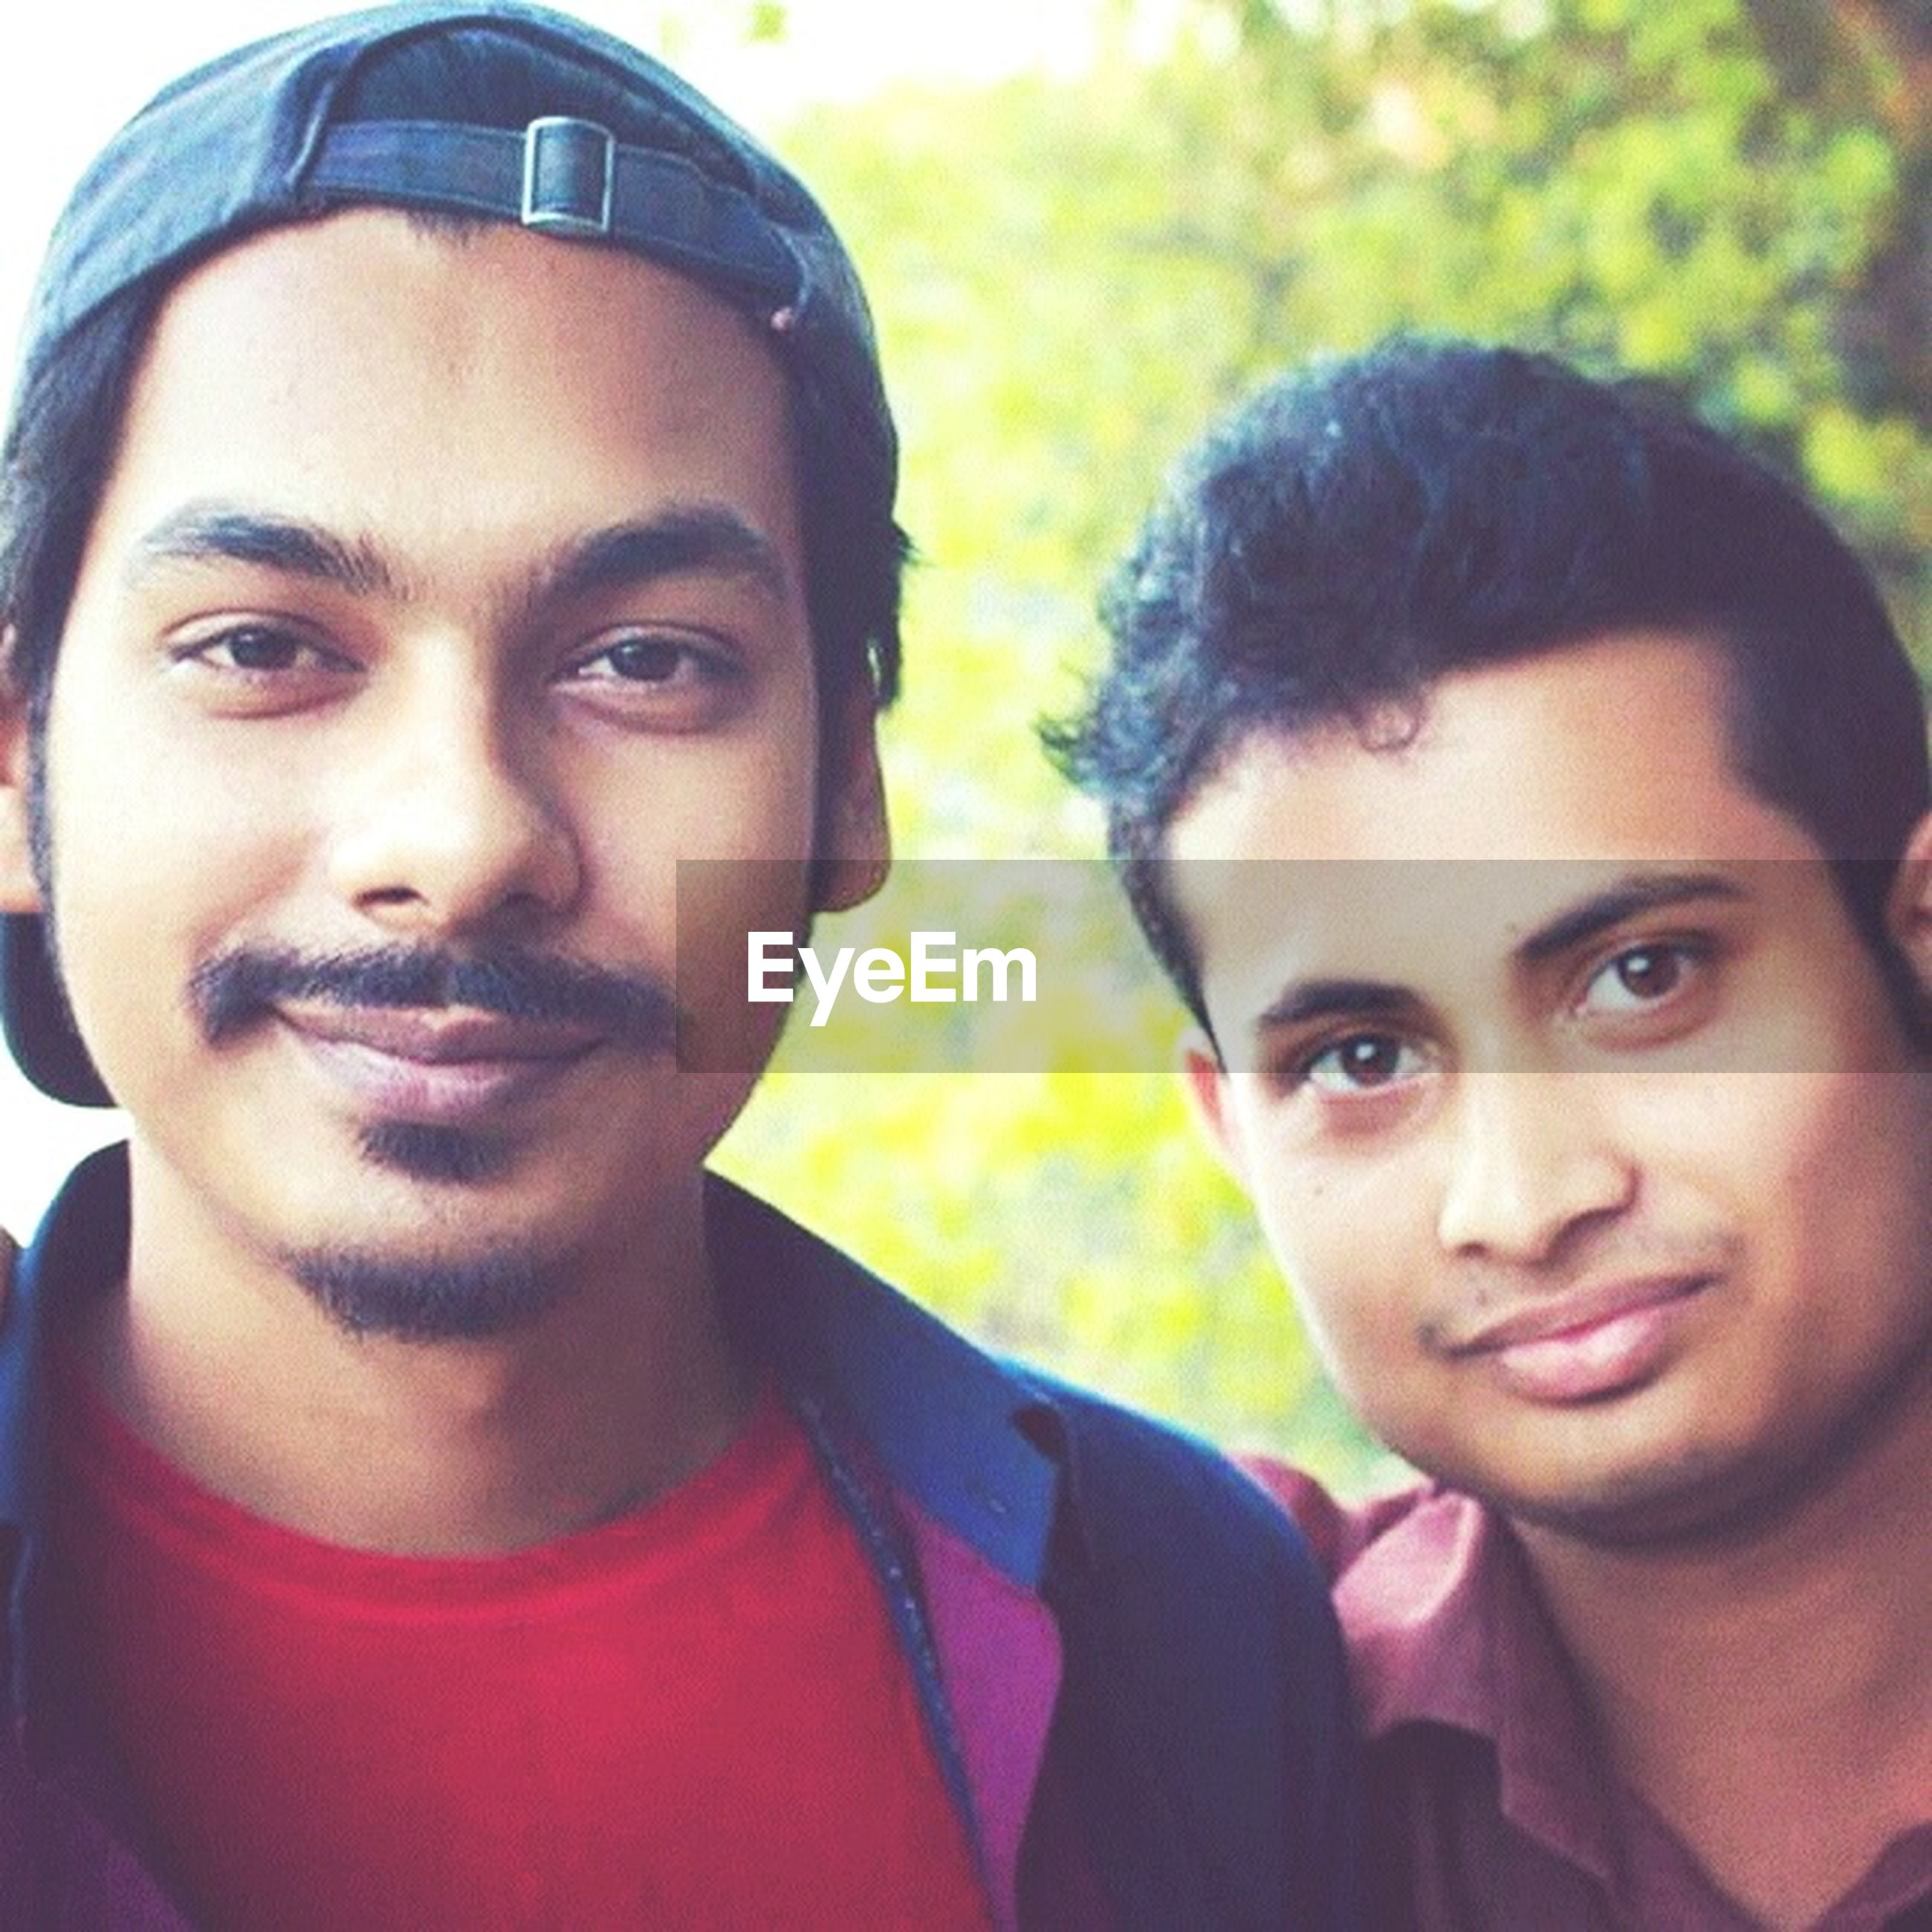 person, portrait, looking at camera, lifestyles, happiness, leisure activity, smiling, childhood, headshot, togetherness, boys, front view, elementary age, bonding, toothy smile, casual clothing, head and shoulders